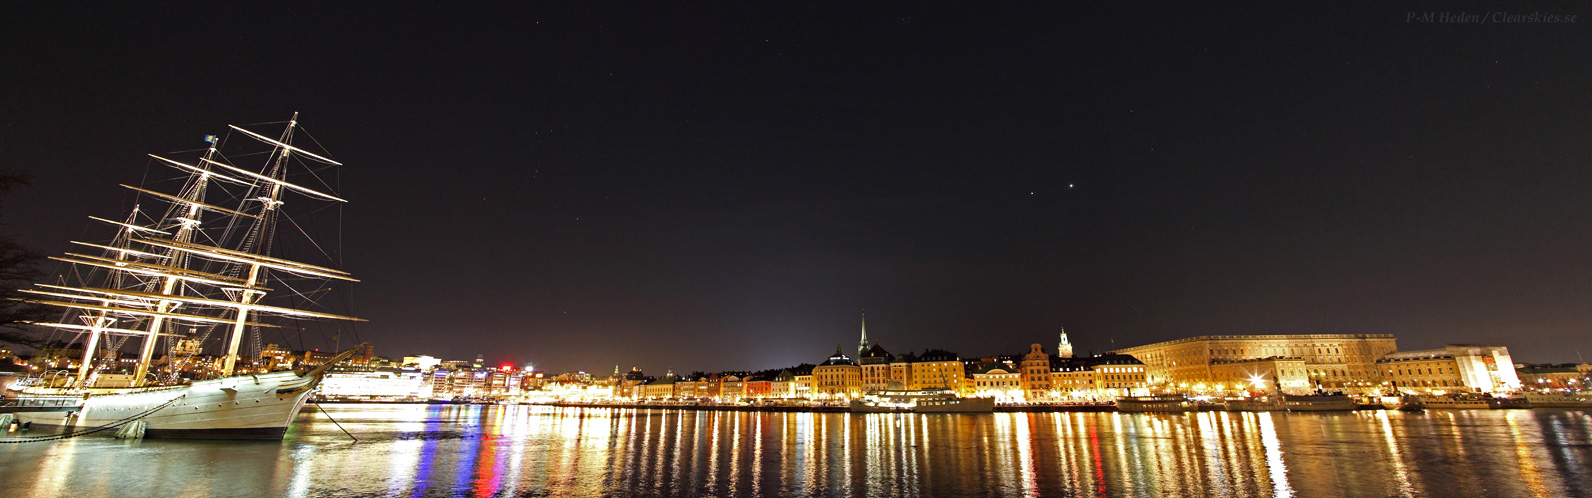 Venus and Jupiter Shine Over Sweden's Night Lights